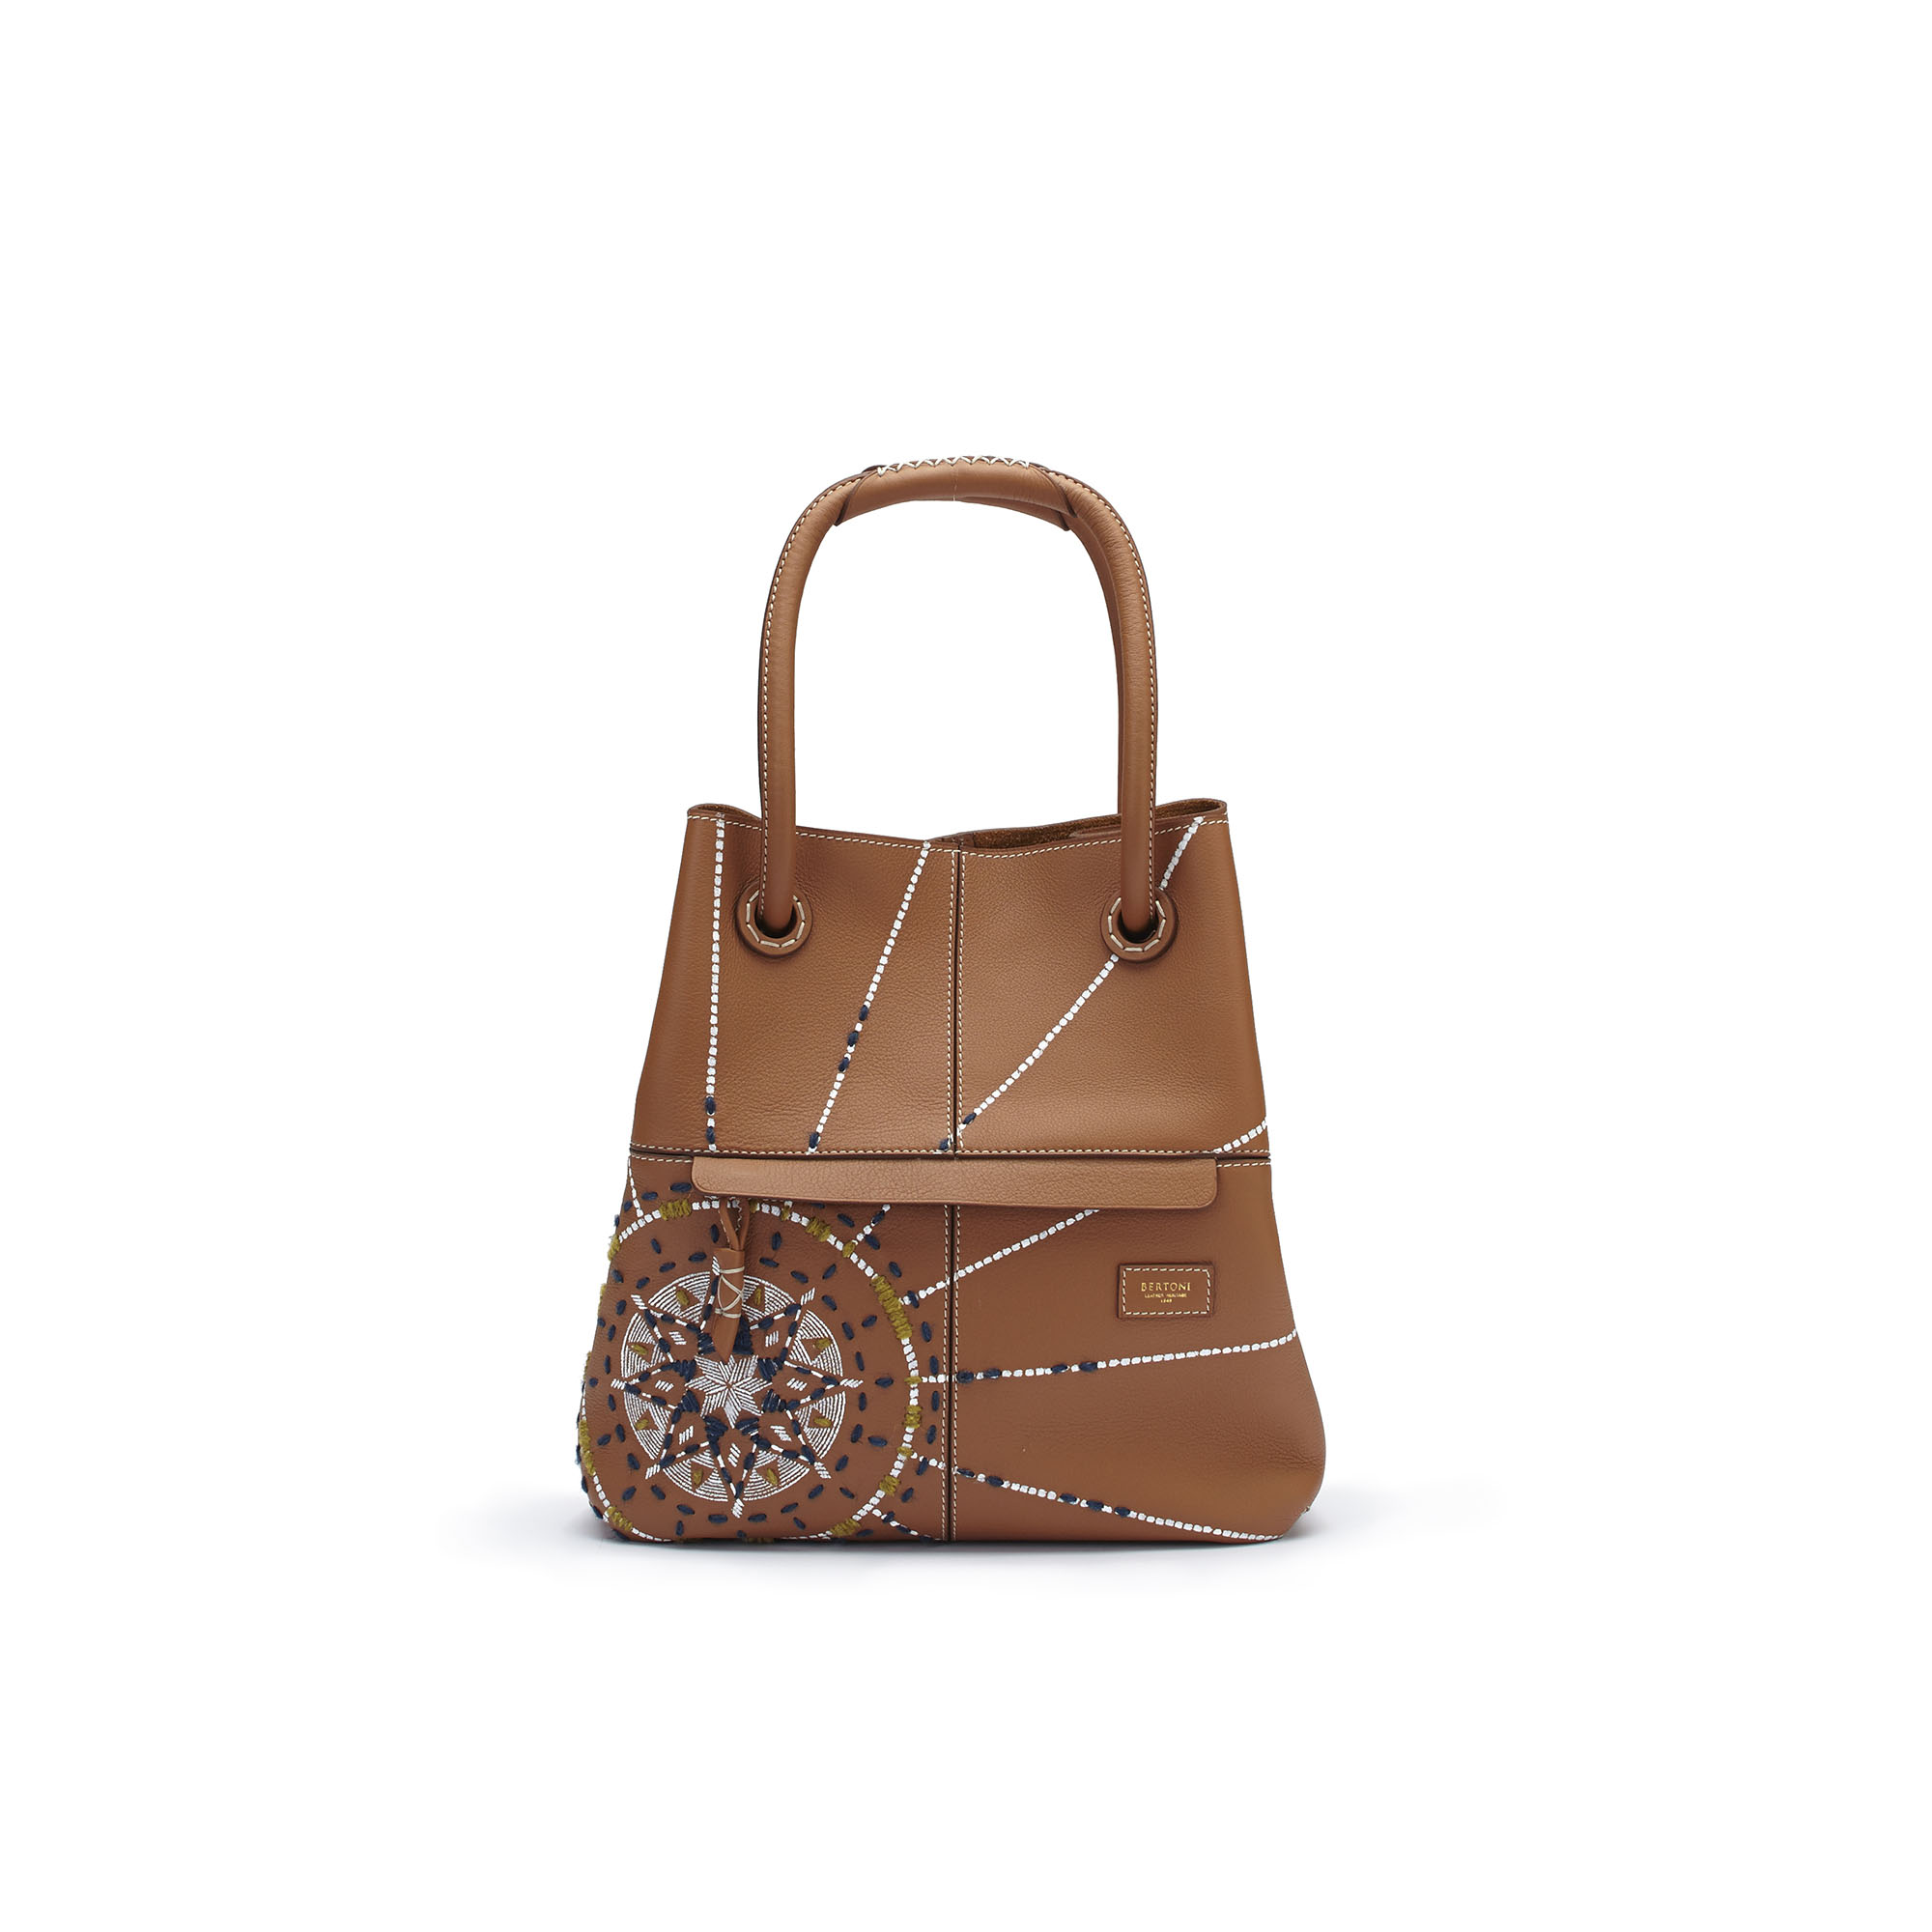 The cognac with painted and embroidered star Satchel bag by Bertoni 1949 01